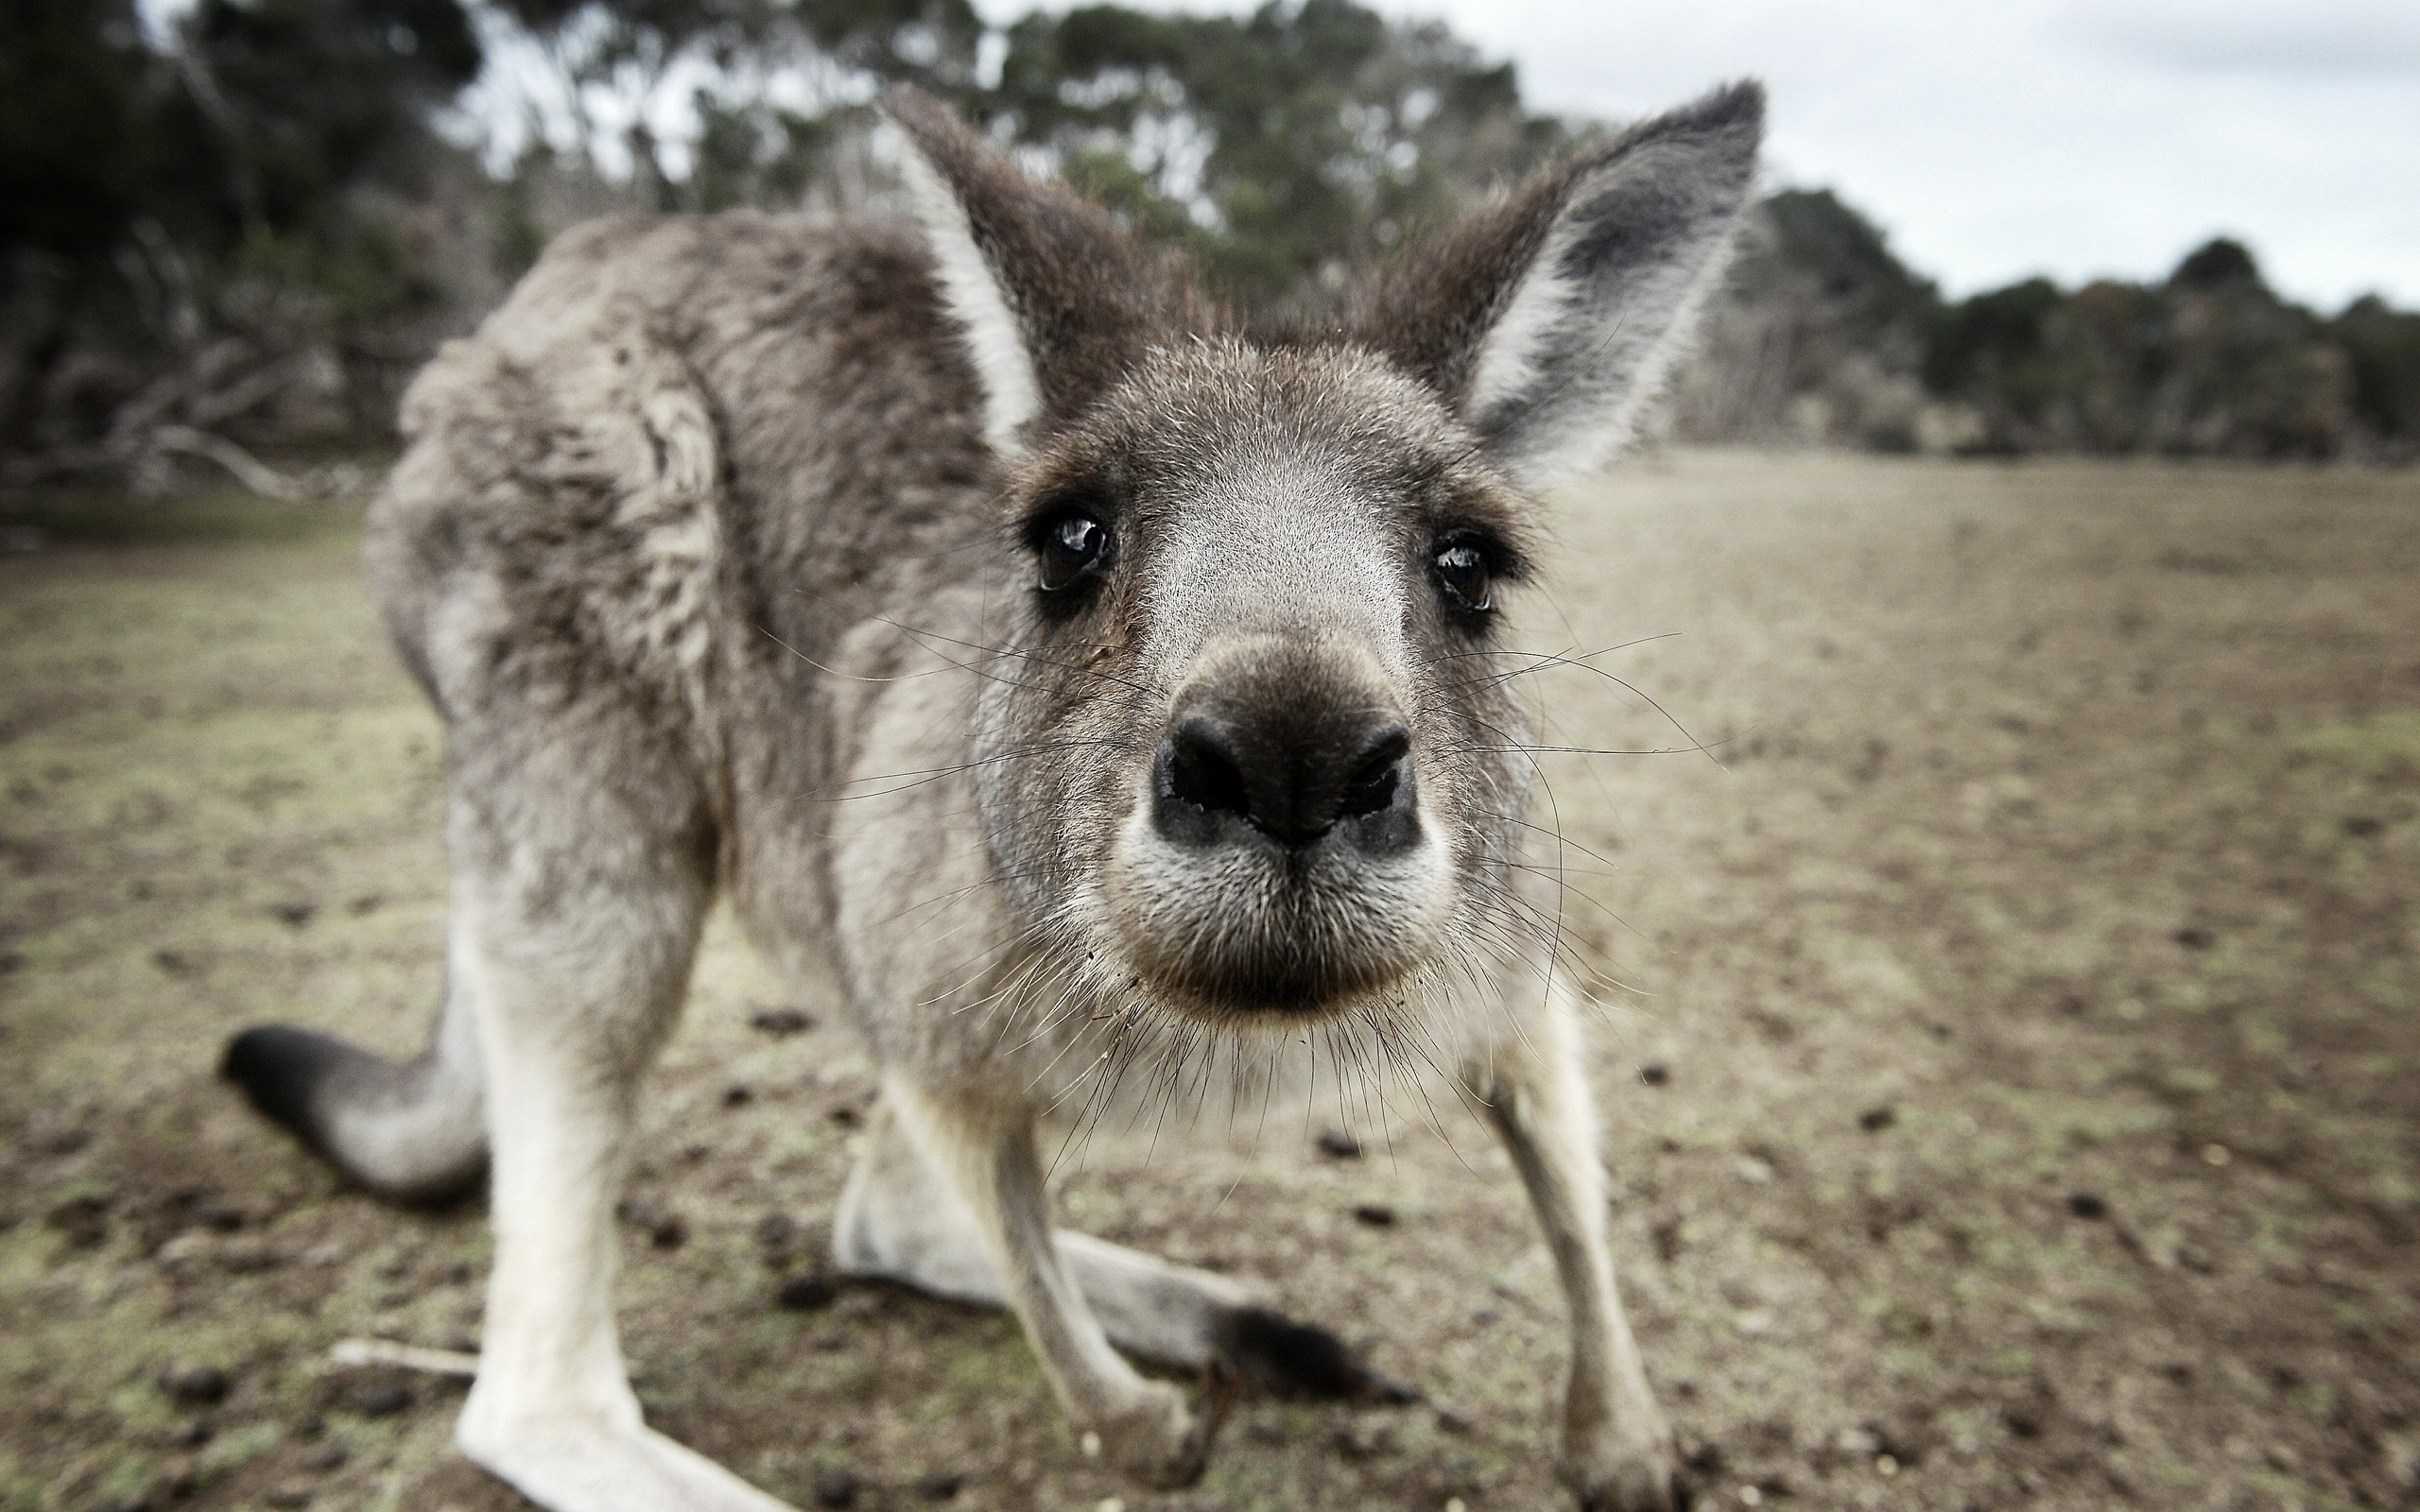 Kangaroo Wallpaper Hd Animals Kangaroos Closeup Wallpapers Hd Desktop And